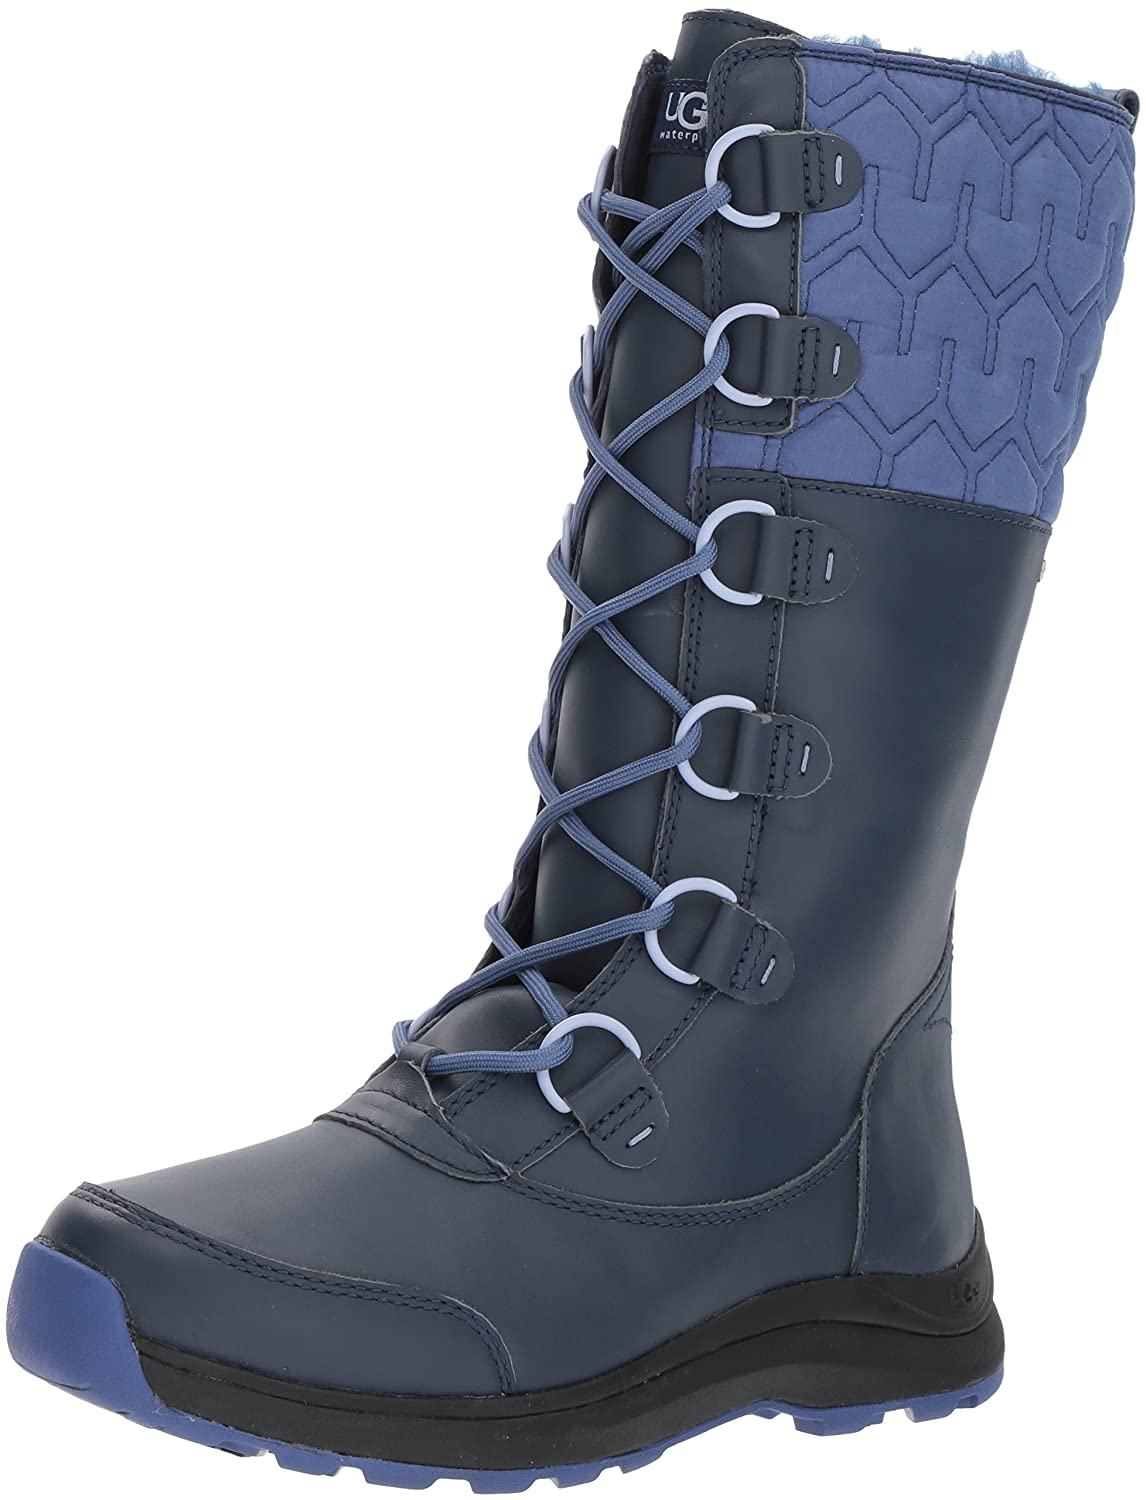 a056abf61b7 UGG Women's Atlason Snow Boot